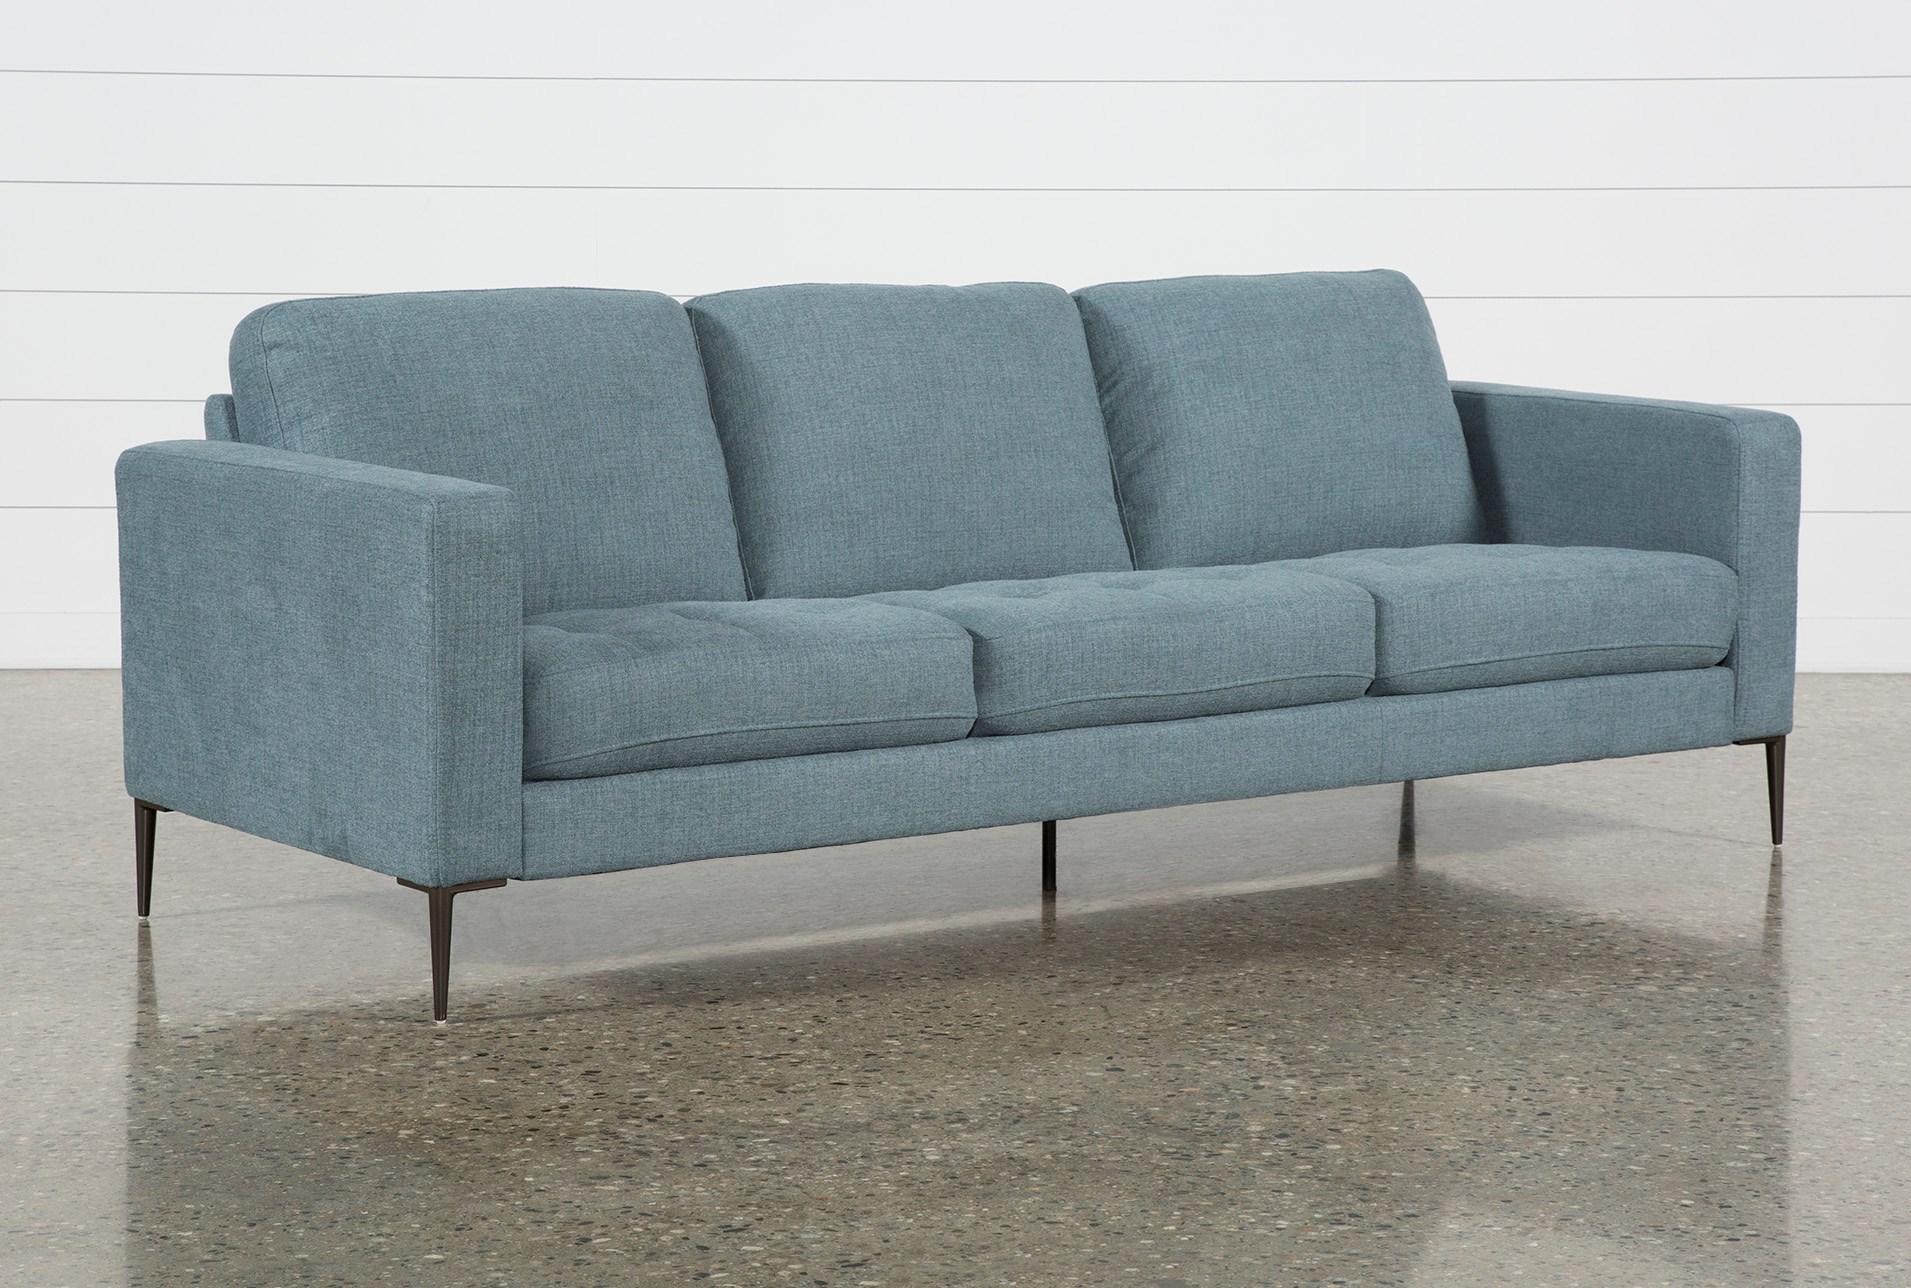 Peachy Aaron Steel Blue Sofa Pabps2019 Chair Design Images Pabps2019Com